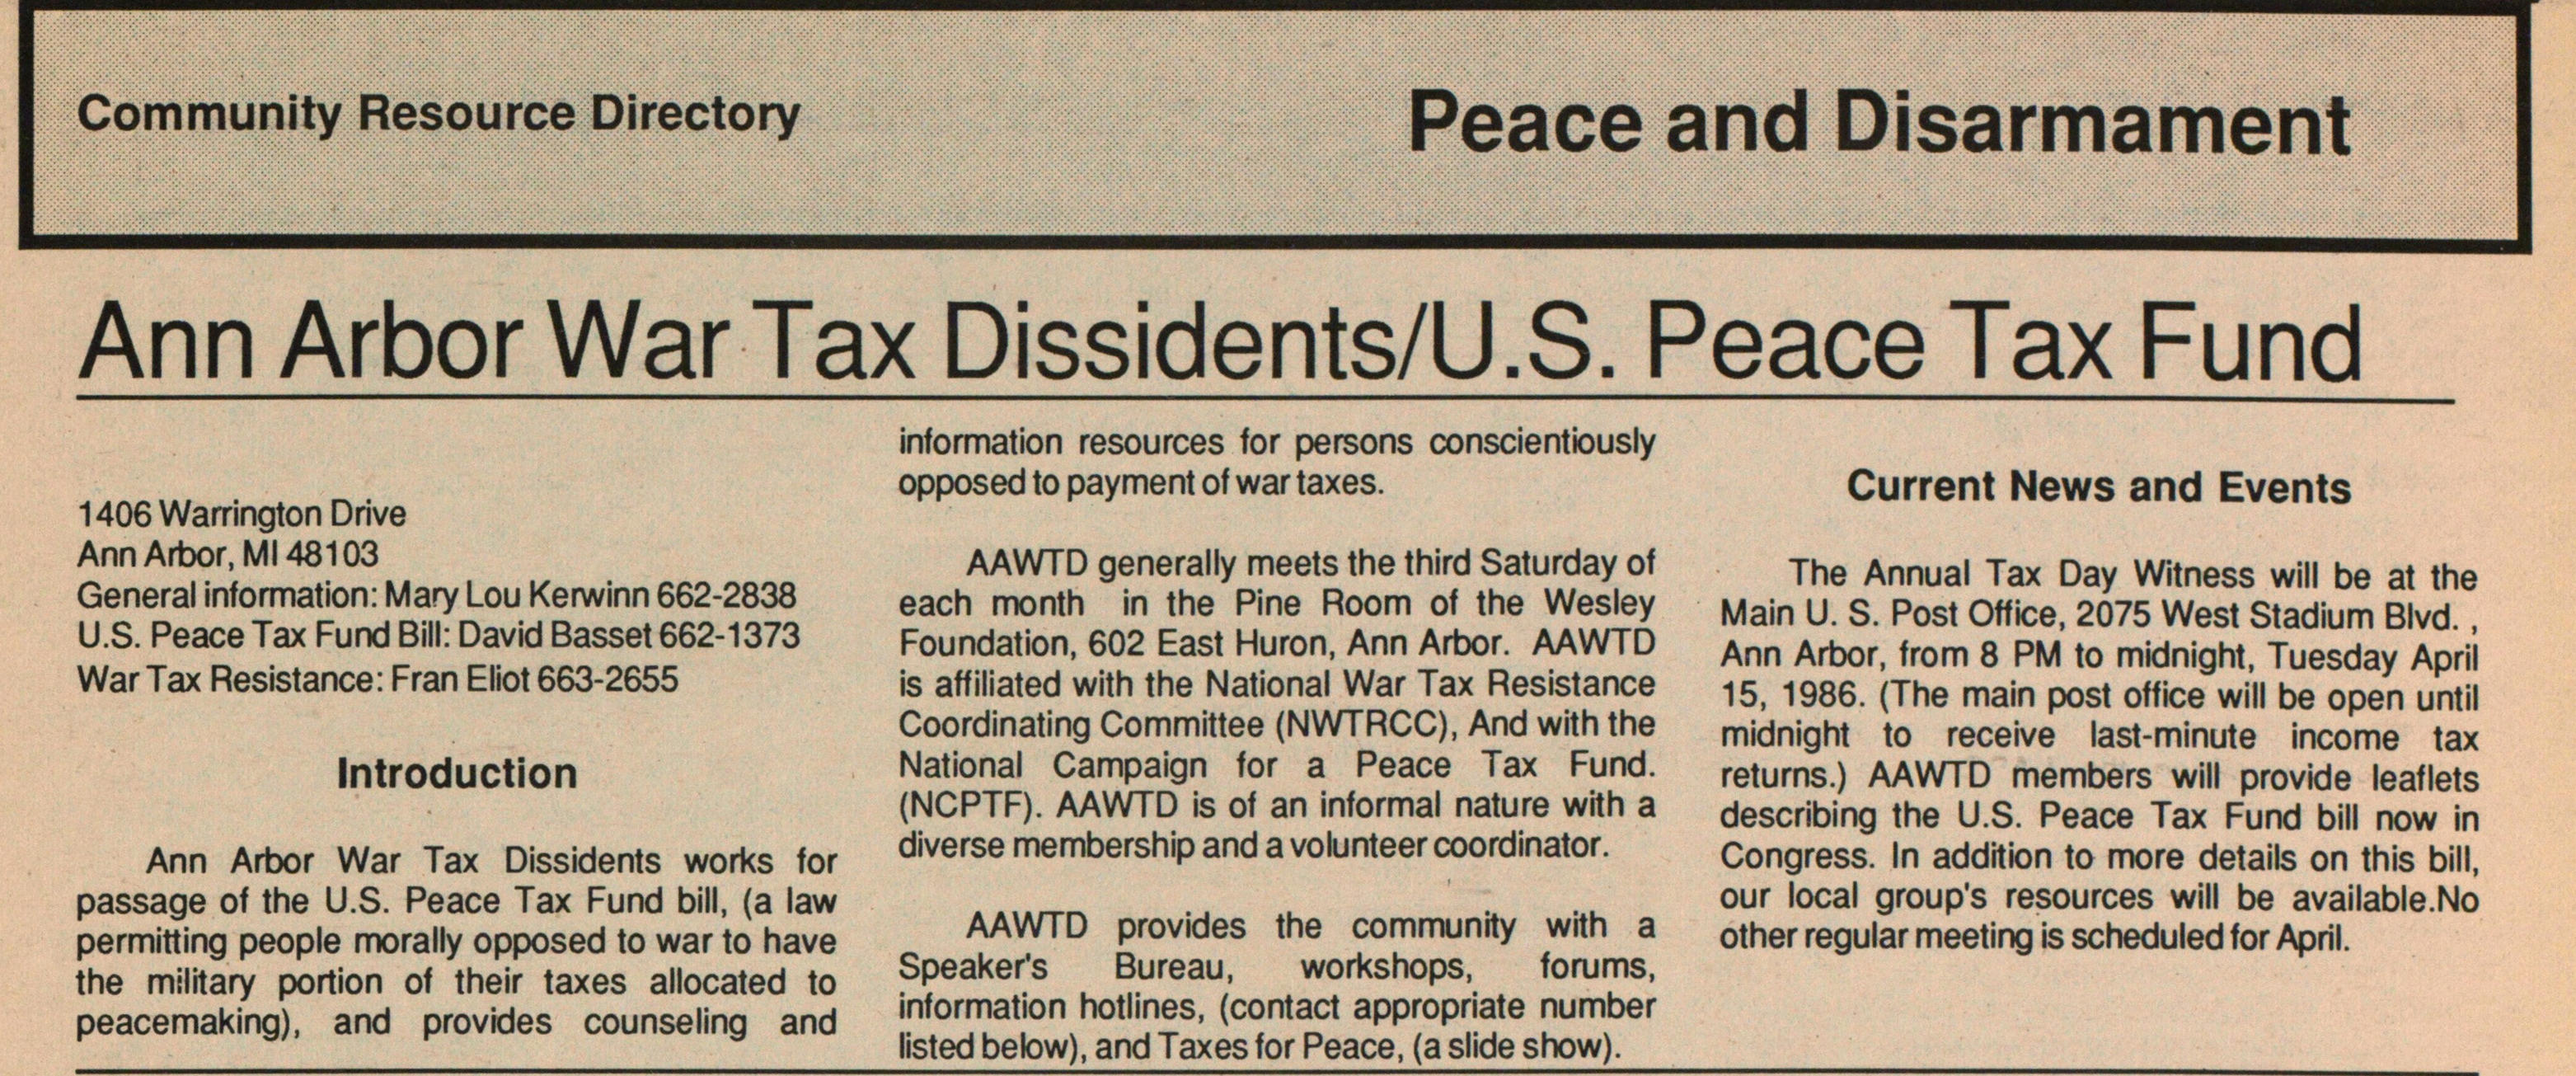 Ann Arbor War Tax Dissidents/U.S. Peace Tax Fund image